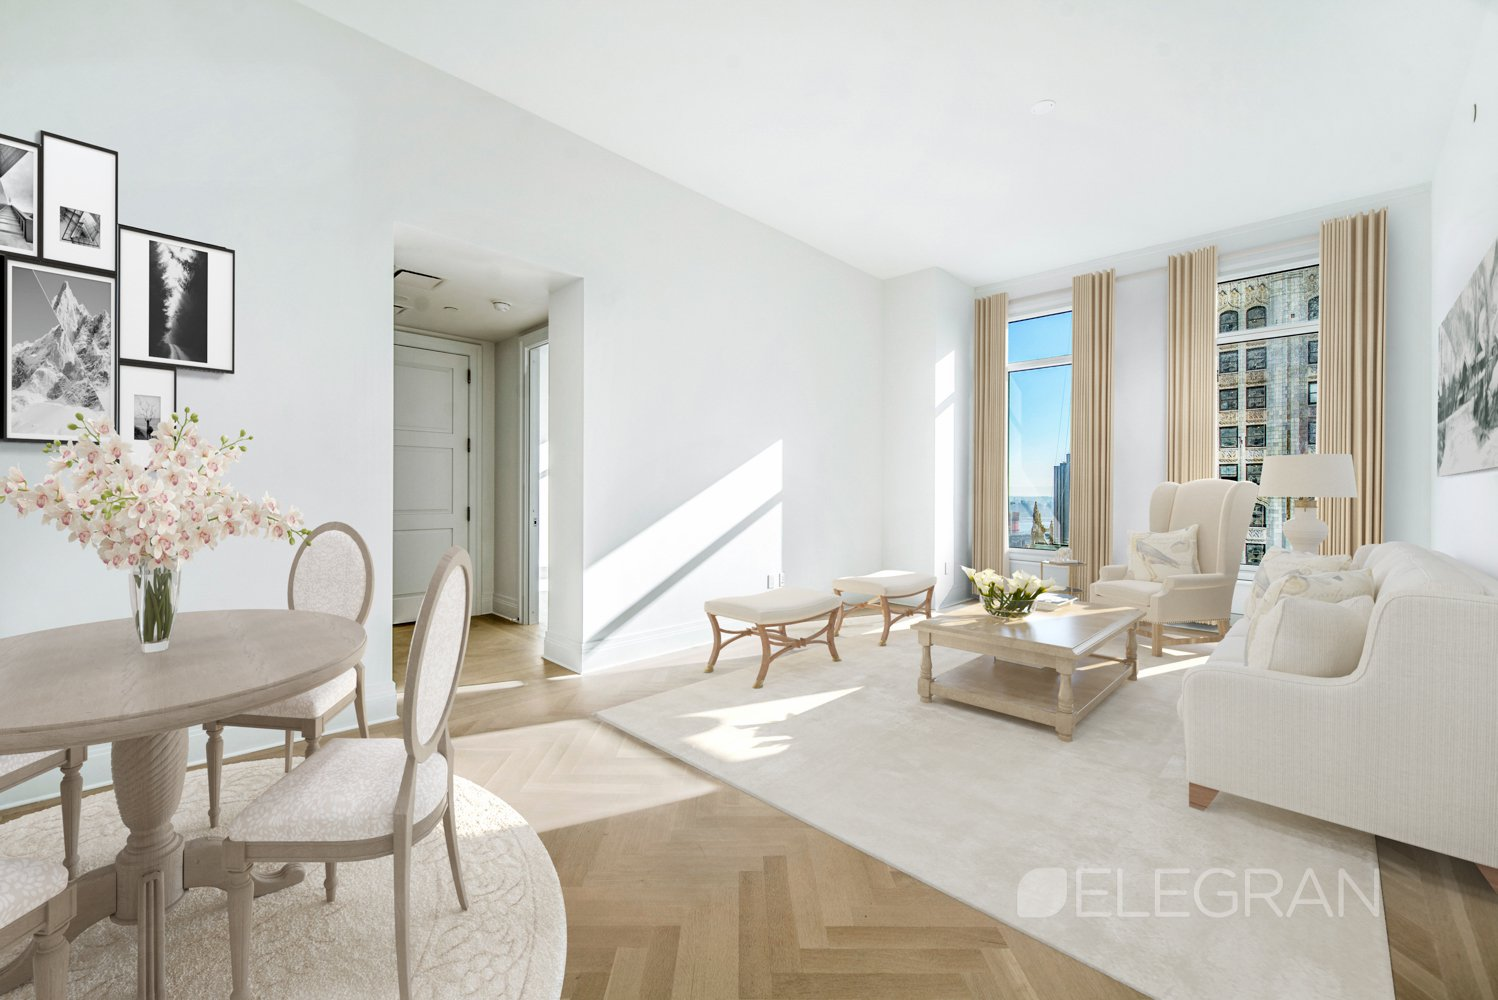 Come and experience the unparalleled 5-star living offered exclusively at the Four Seasons Private Residences New York, Downtown. This 48th floor, 1 bedroom, 1.5 bath, 1,100+ sq. ft. apartment features floor to ceiling windows, an abundance of natural light and impressive eastern views of lower Manhattan and the Woolworth Tower.The formal entry foyer leads to the living & dining room with expansive ceilings and solid white oak floors in a natural matte finish and a herringbone pattern. The separate and spacious Gaggenau kitchen is state of art and a chef's dream. The gracious master suite offers ample storage with a large walk-in closet plus second closet, and the en-suite five fixture marble bath features Kallista fixtures and radiant heat flooring. A powder room for guests and Asko washer/dryer complete the apartment.Residents enjoy access to the services and amenities of the legendary Four Seasons Hotels and Resorts including a 75-ft. swimming pool, spa and salon, attended parking garage, world renown restaurant CUT by Wolfgang Puck, bar and lounge, ballroom facilities, and meeting rooms, as well as a comprehensive suite of a la carte services. The 38th floor is devoted to private residential amenities including a fitness center and yoga studio, private dining room, conservatory and lounge with access to loggias, Roto-designed kid's playroom, and screening room.Conveniently nestled at the convergence of Tribeca, City Hall and the Financial District, this apartment has it all benefits from three vibrant neighborhoods including the recently opened Westfield complex comprising the best retail boutiques including Apple, Boss, Breitling, Dior, a new Eataly and so much more.